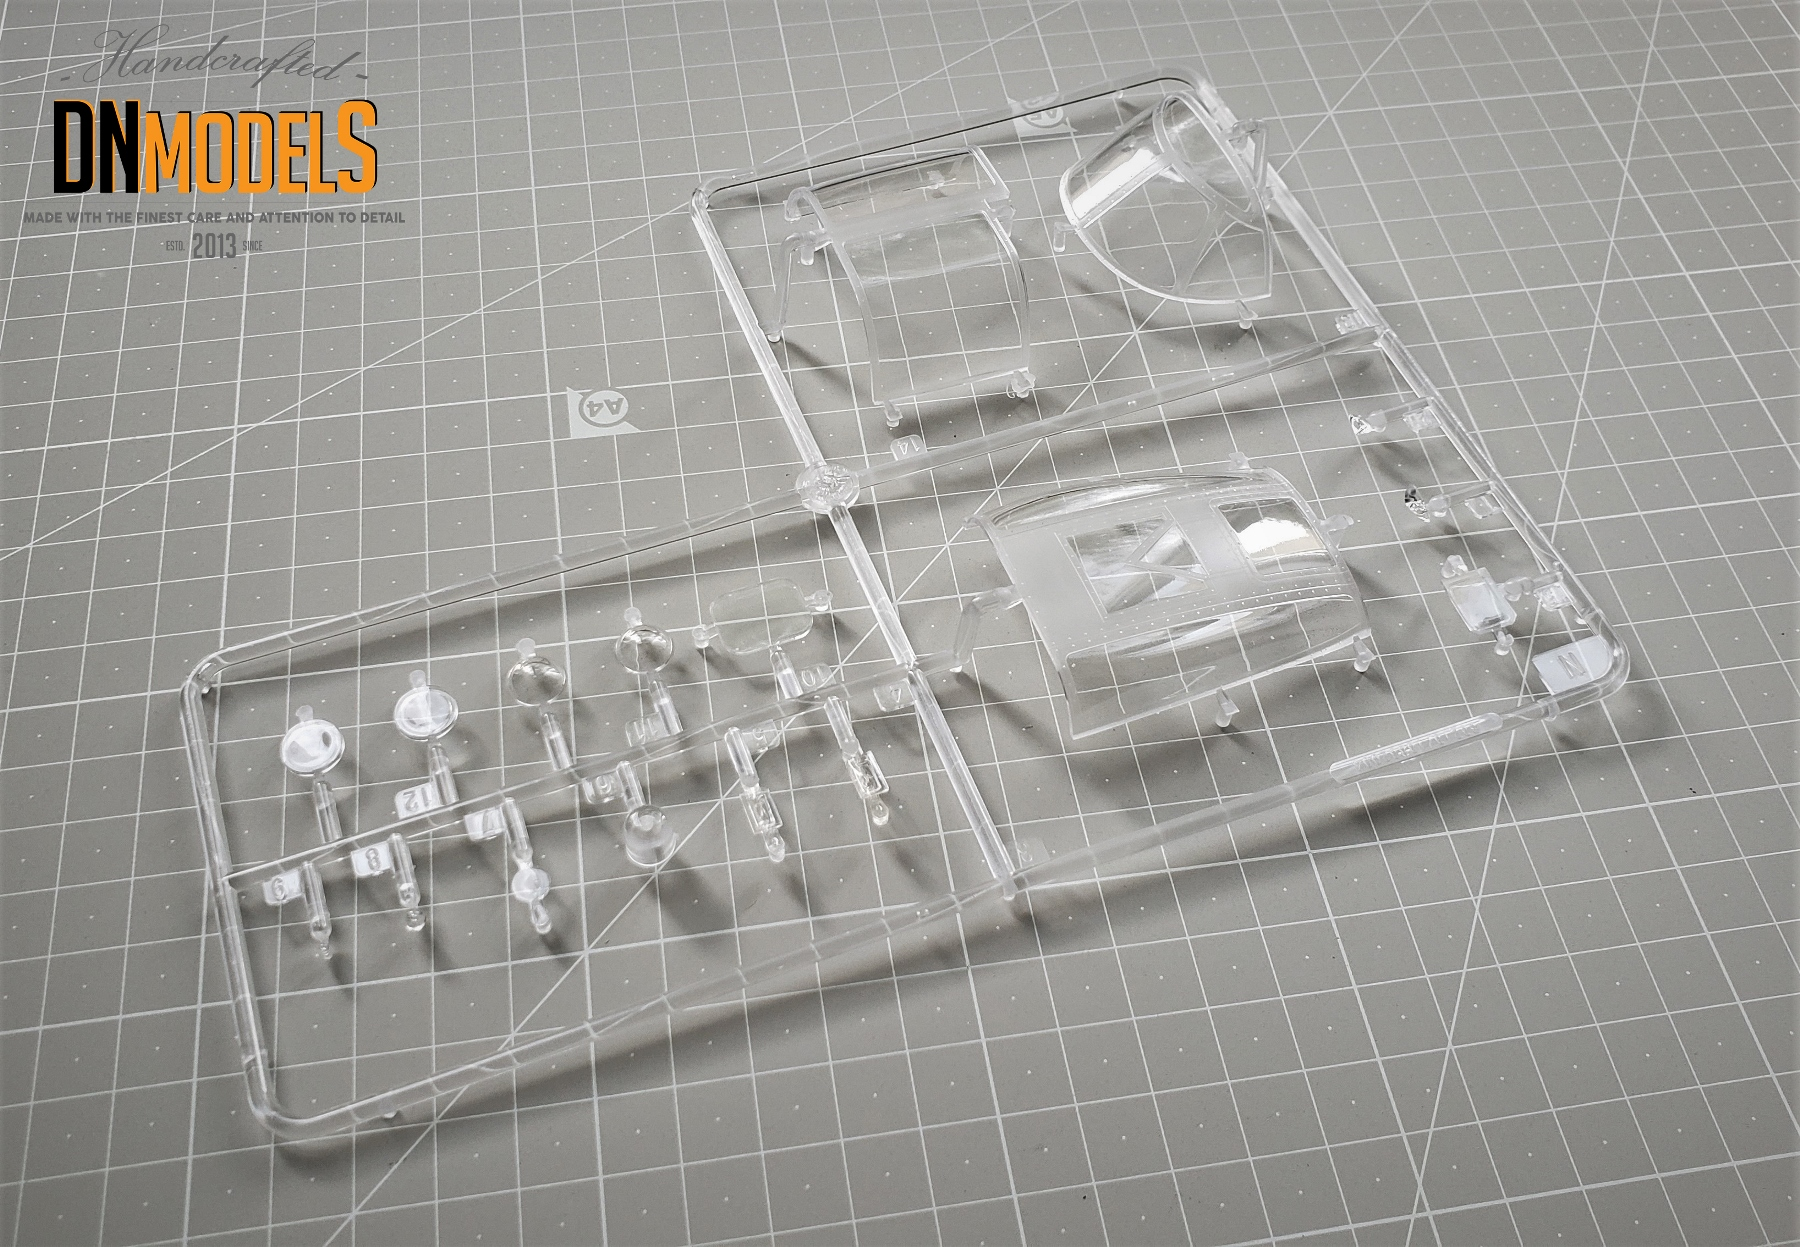 Clear parts a26b invader hobby boss 83213 review dn models masks for scale models